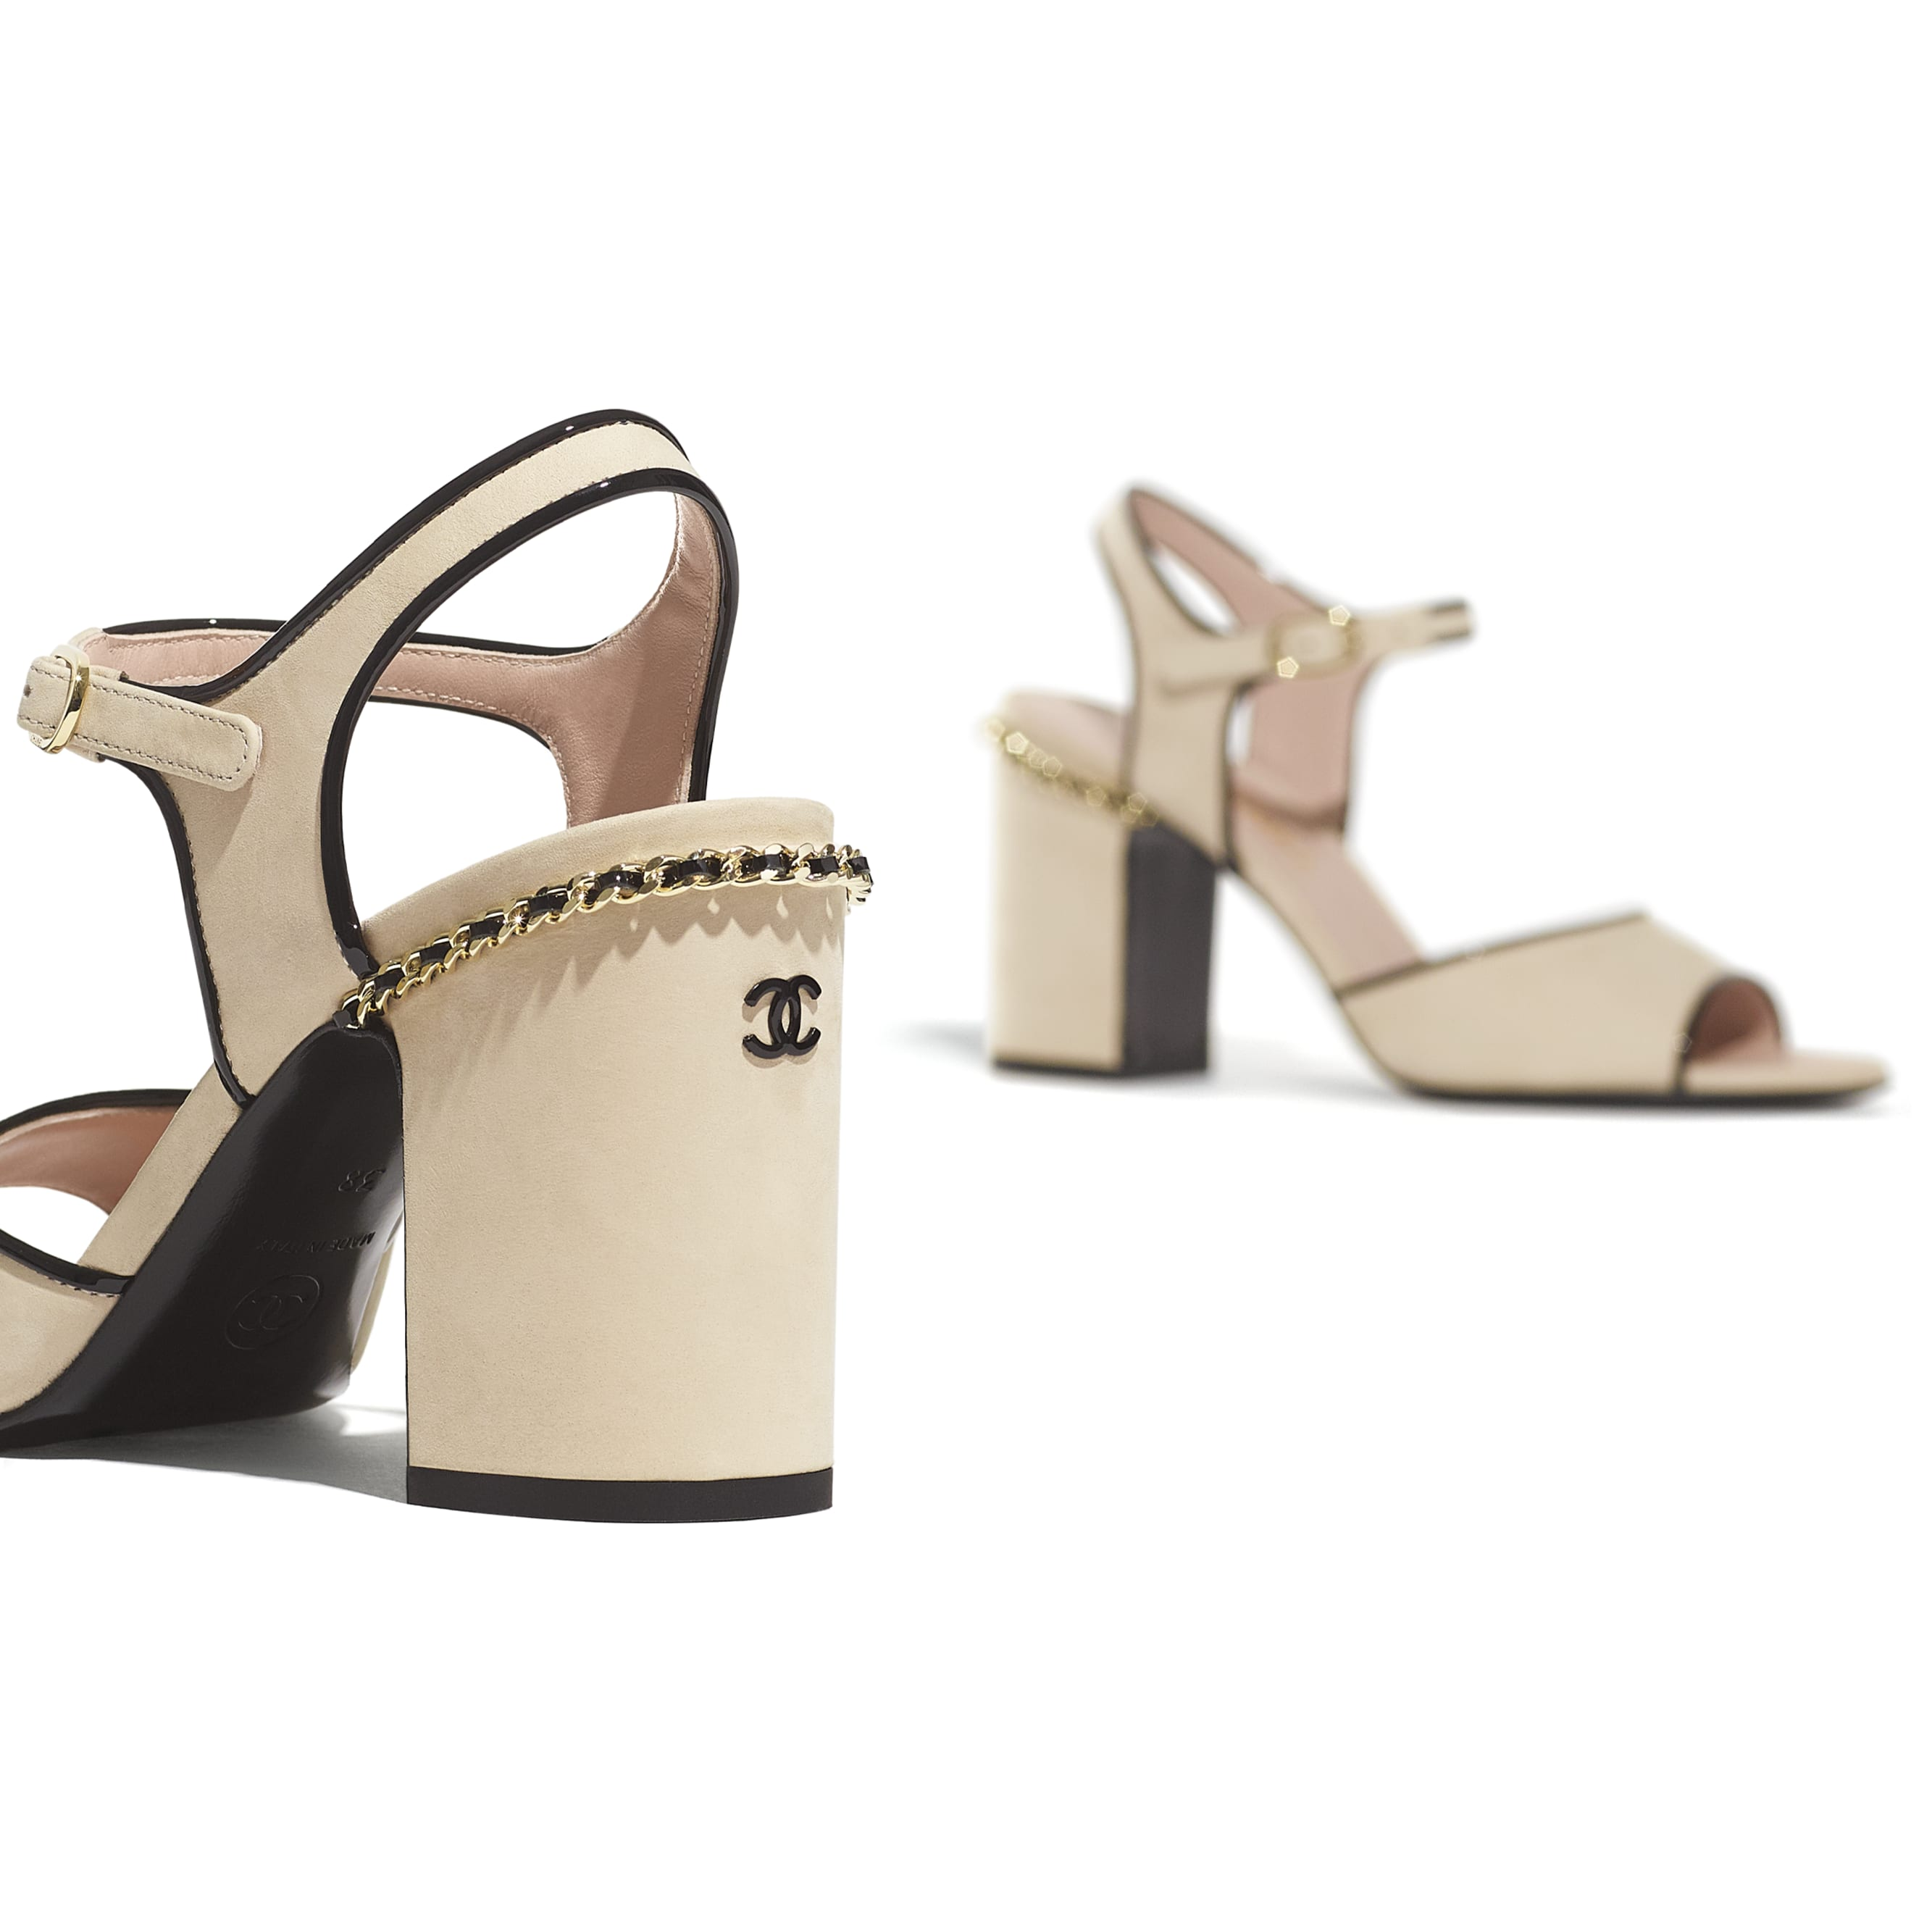 Sandals - Beige & Black - Matte Velvet Calfskin - CHANEL - Extra view - see standard sized version